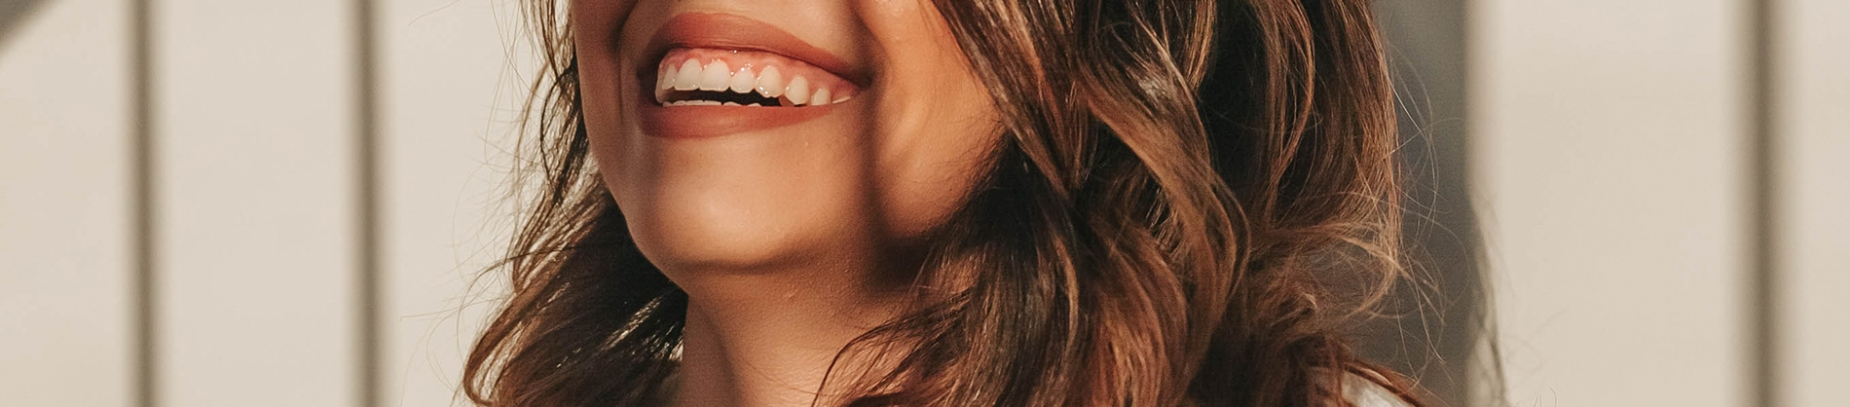 A close up of a women's mouth laughing